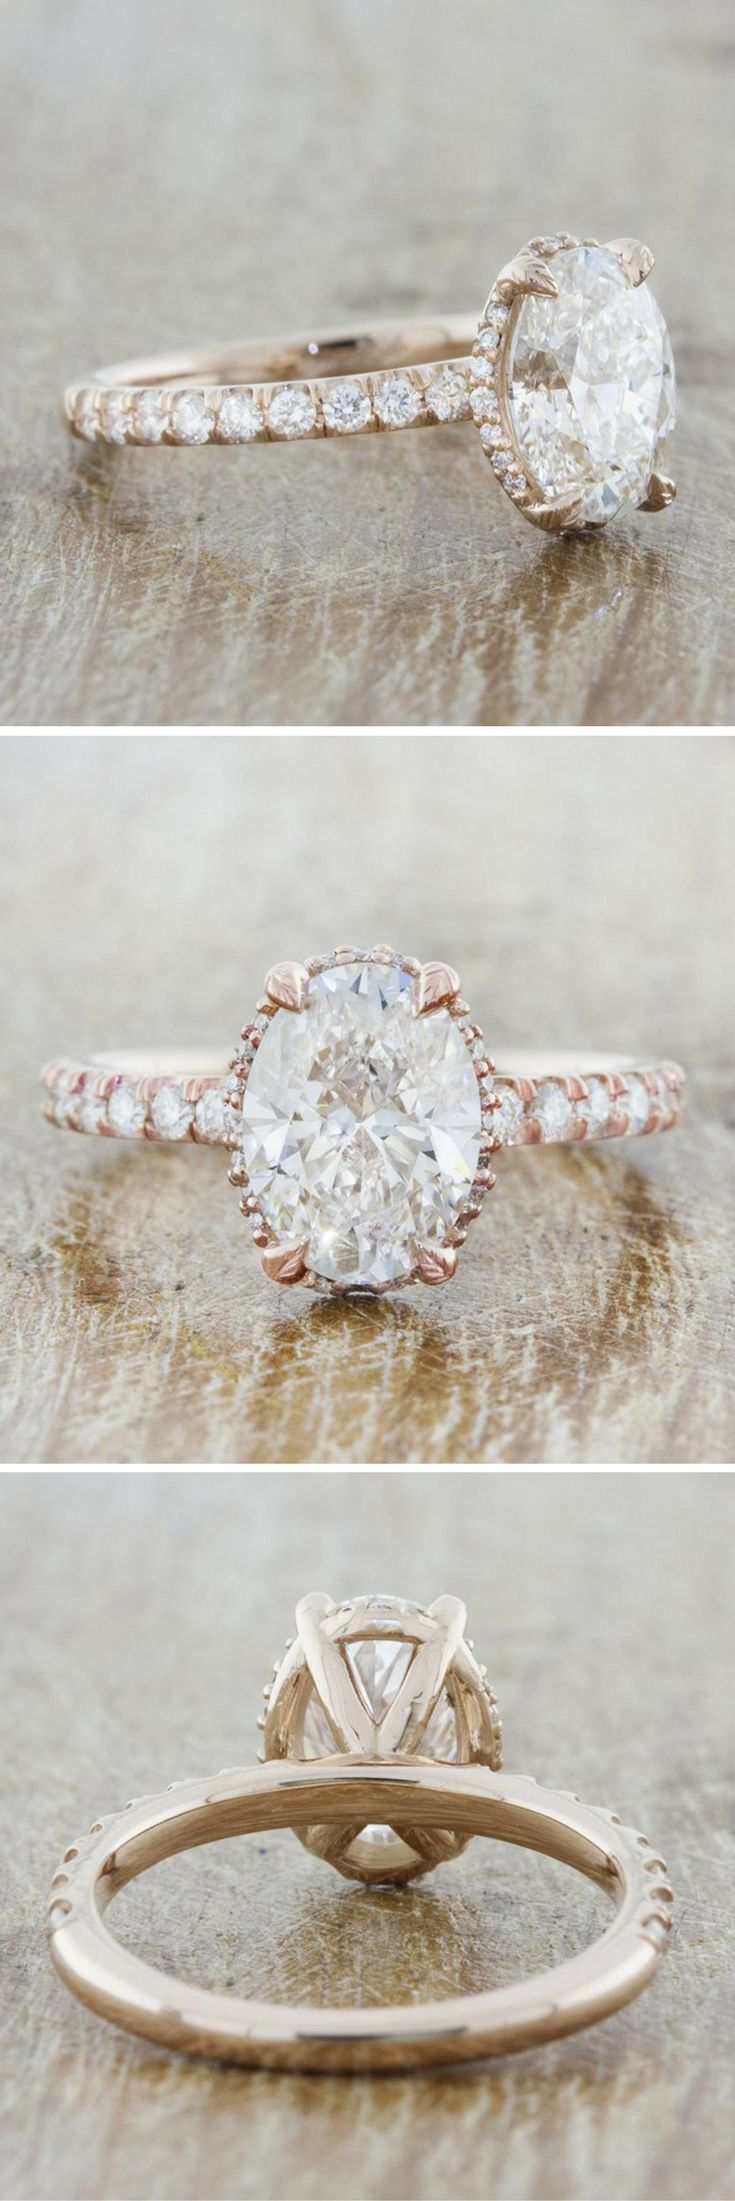 Samanthina is a rose gold engagement ring that represents the amazing balance of nature. The four-leaf prongs that guard the center stone is symbolic of the four seasons that keep our world in perfect harmony.  Customize this ring to your liking today! #weddingring